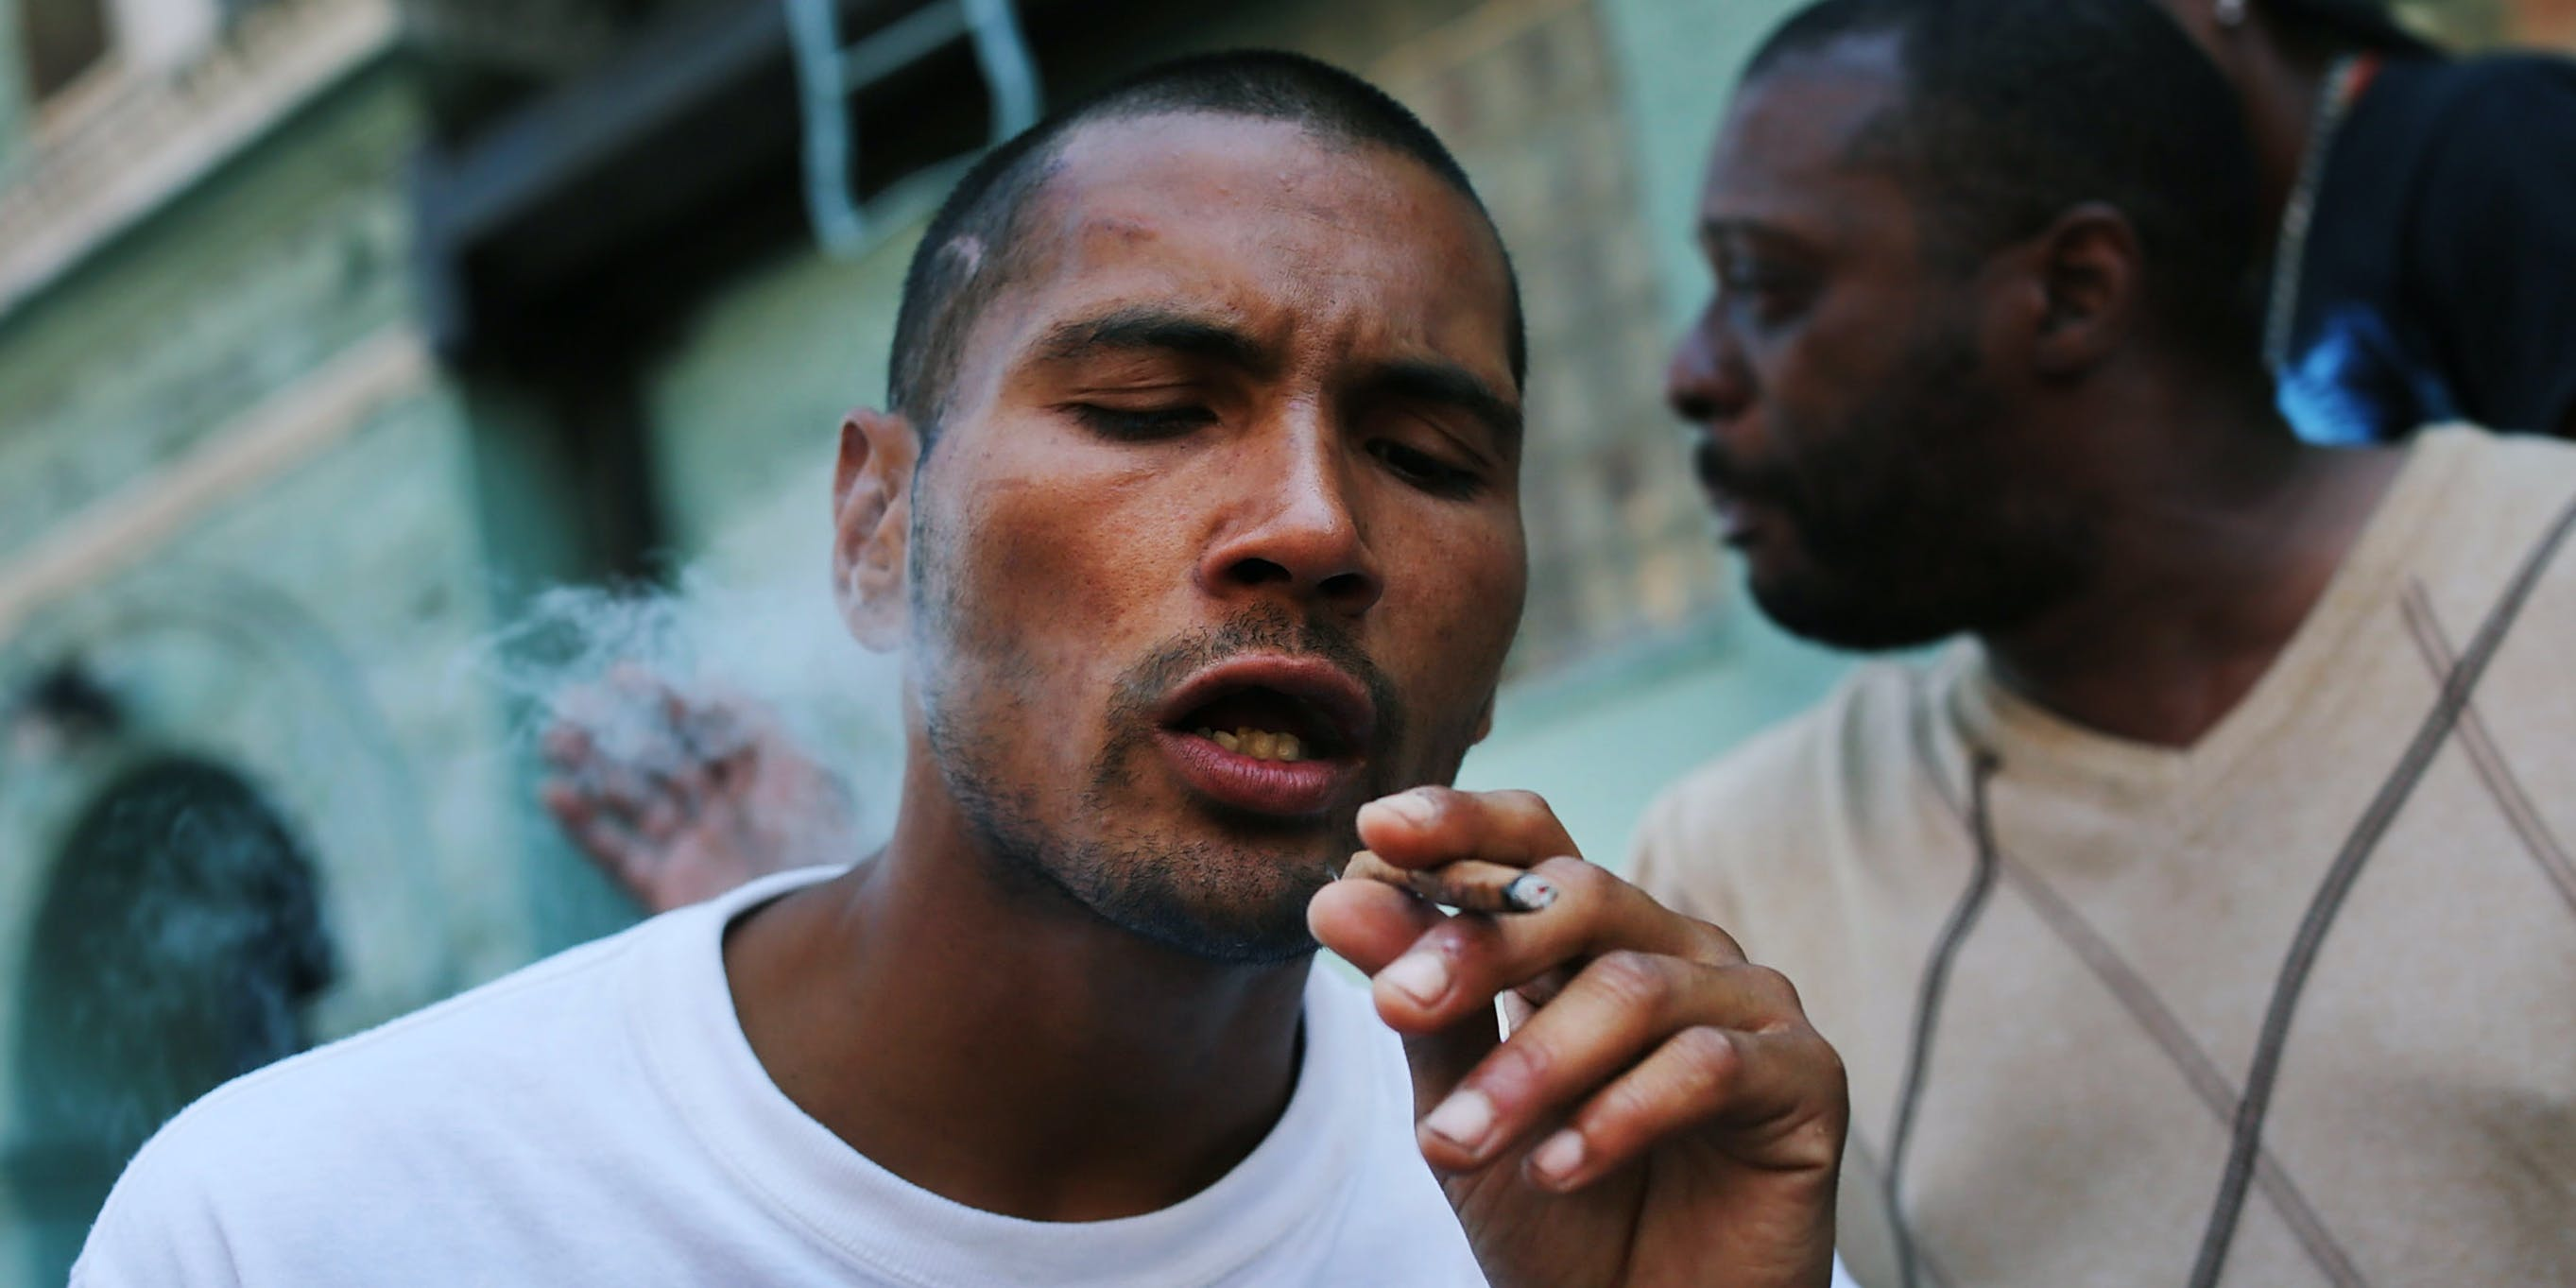 "NEW YORK, NY - AUGUST 05: A man smokes K2 or ""Spice"", a synthetic weed drug, along a street in East Harlem on August 5, 2015 in New York City. New York, along with other cities, is experiencing a deadly epidemic of synthetic marijuana usage including varieties known as K2 or ""Spice"" which can cause extreme reactions in some users. (Photo by Spencer Platt/Getty Images)"